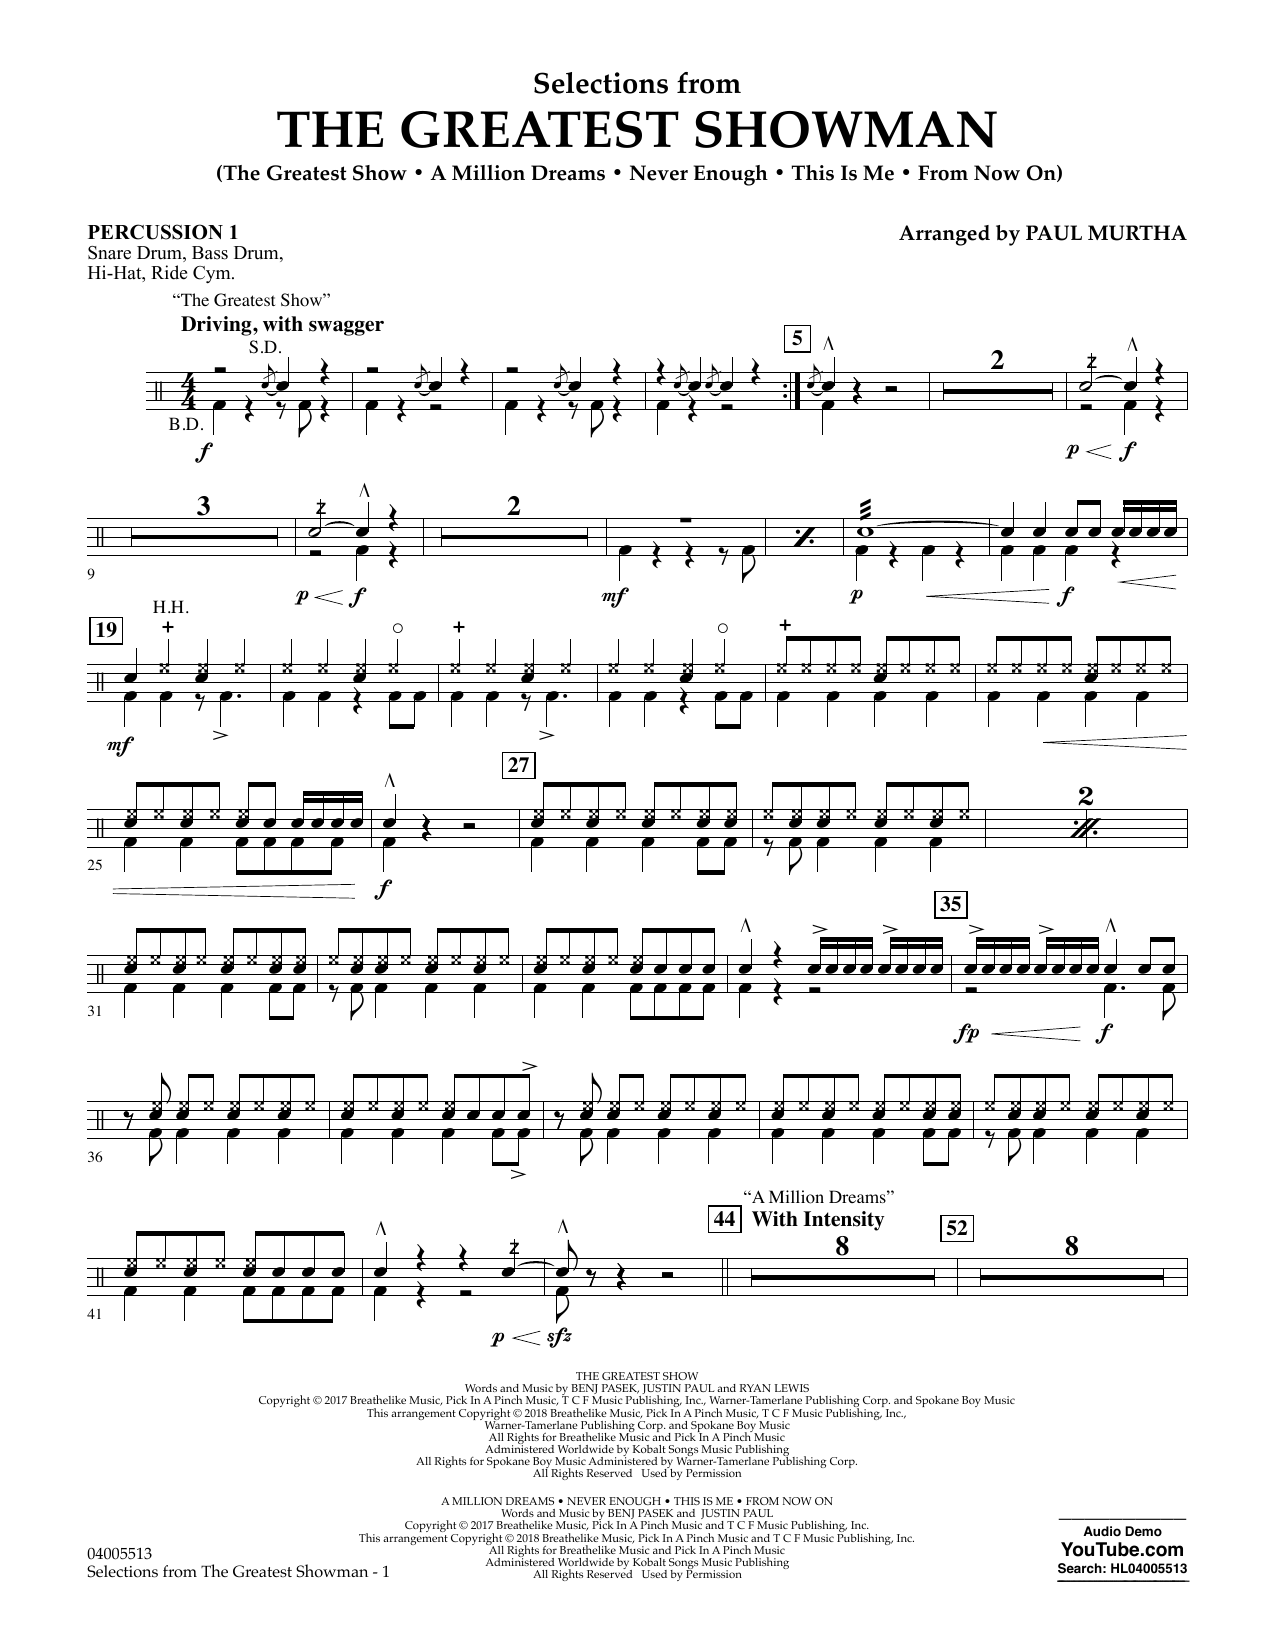 Paul Murtha Selections from The Greatest Showman - Percussion 1 sheet music notes and chords